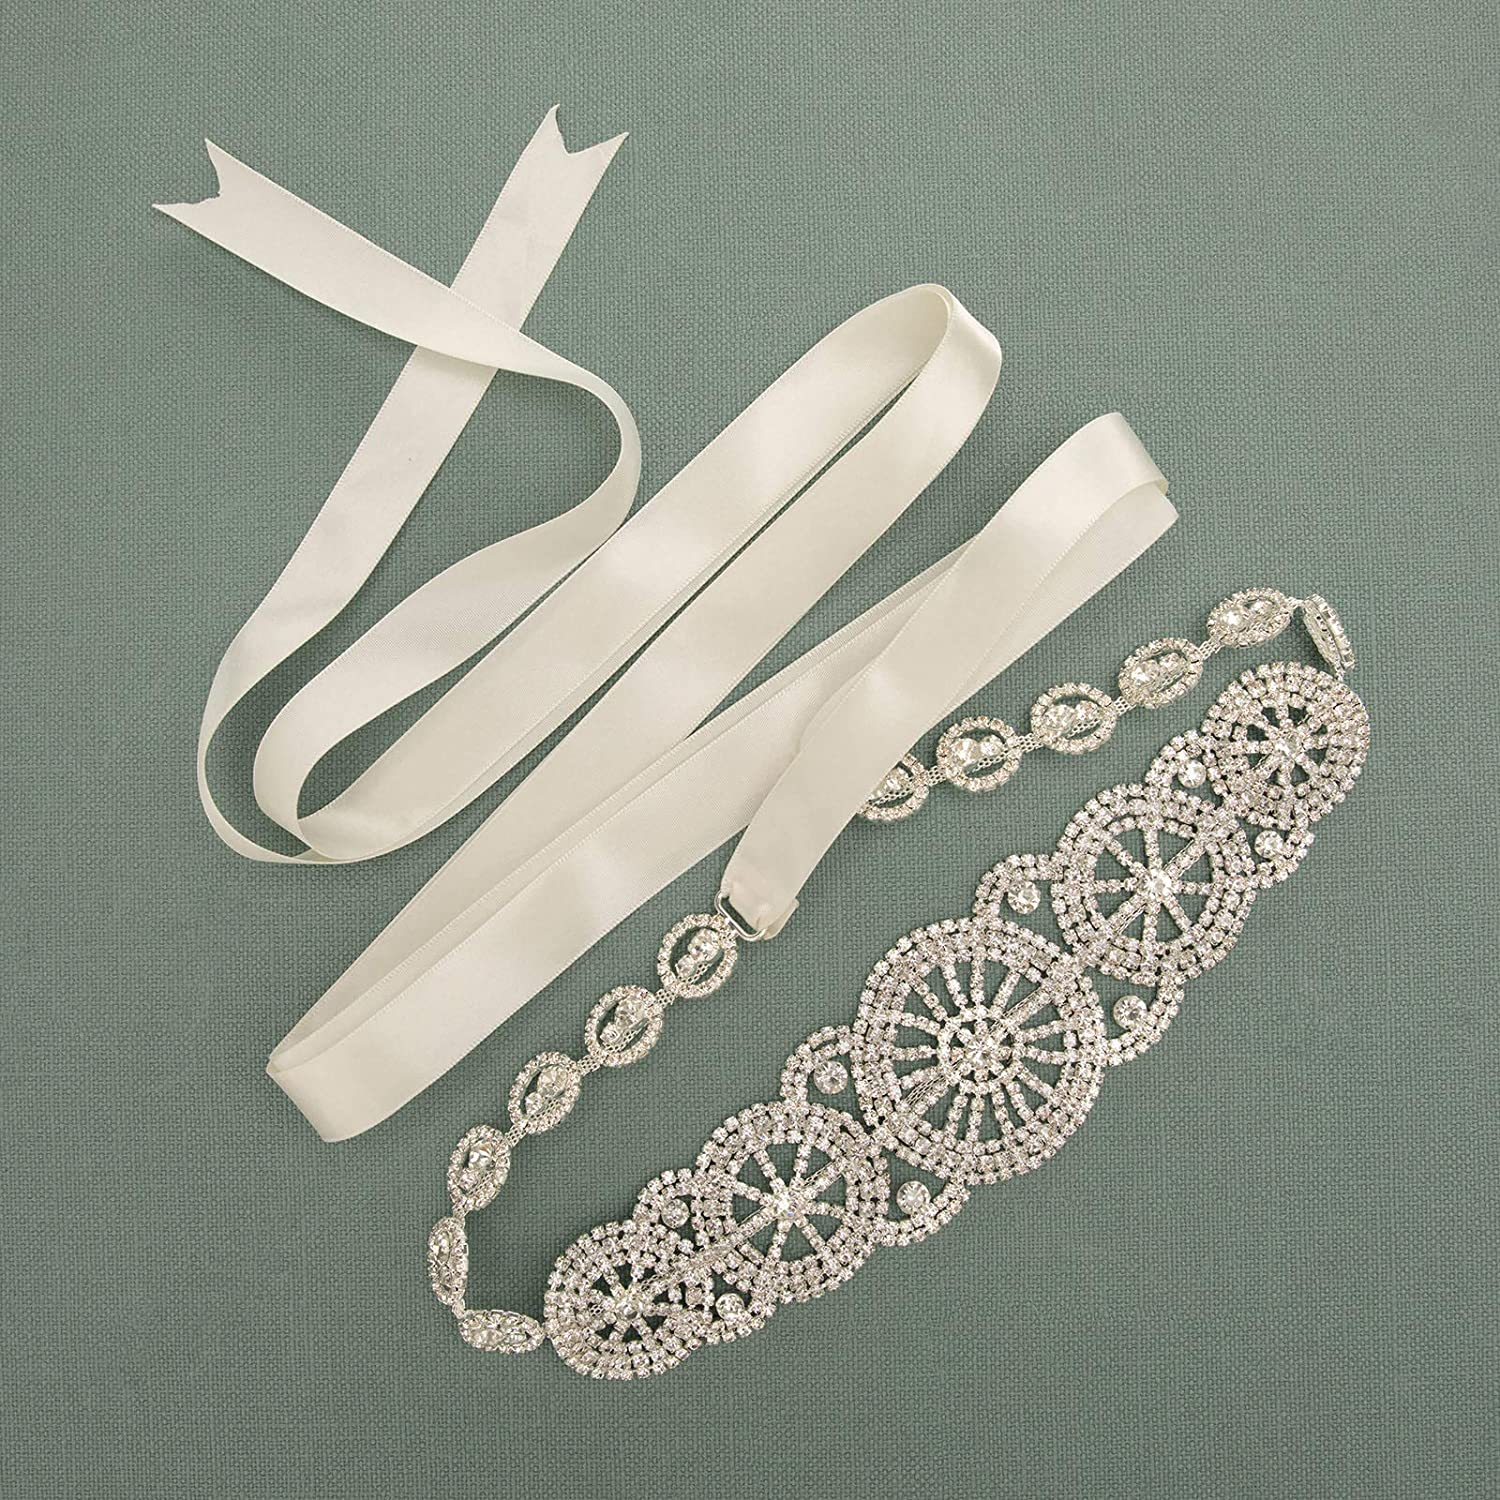 Silver SWEETV Luxury Rhinestone Bridal Belt Wedding Sash Belt Crystal Dress Headband DIY Accessories